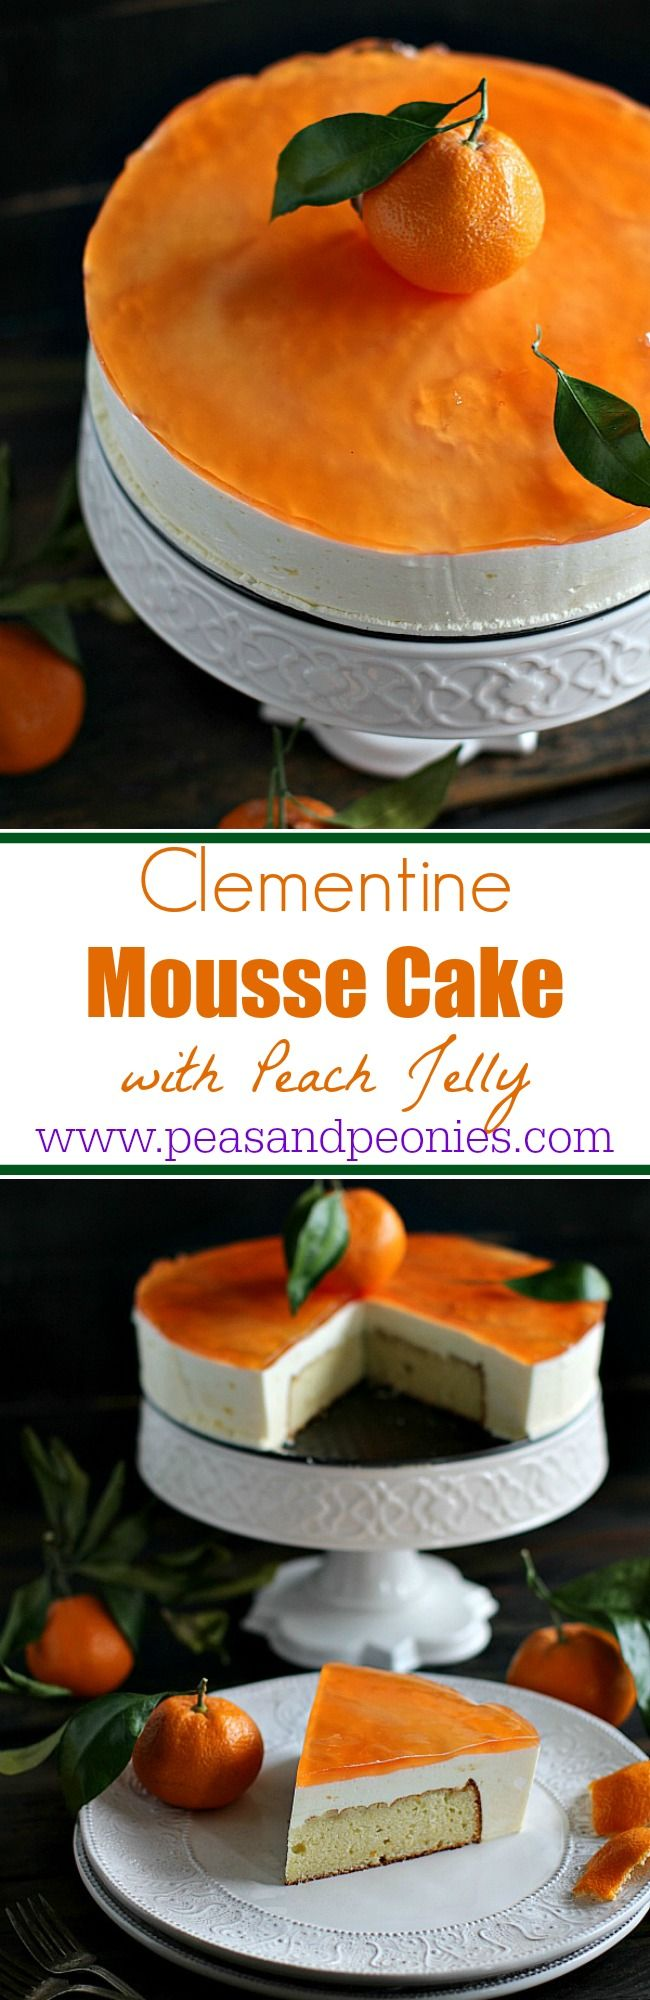 A delightfully airy, creamy and aromatic clementine mousse cake over delicious yellow cake and topped with sweet and flavorful peach jelly - Peas and Peonies